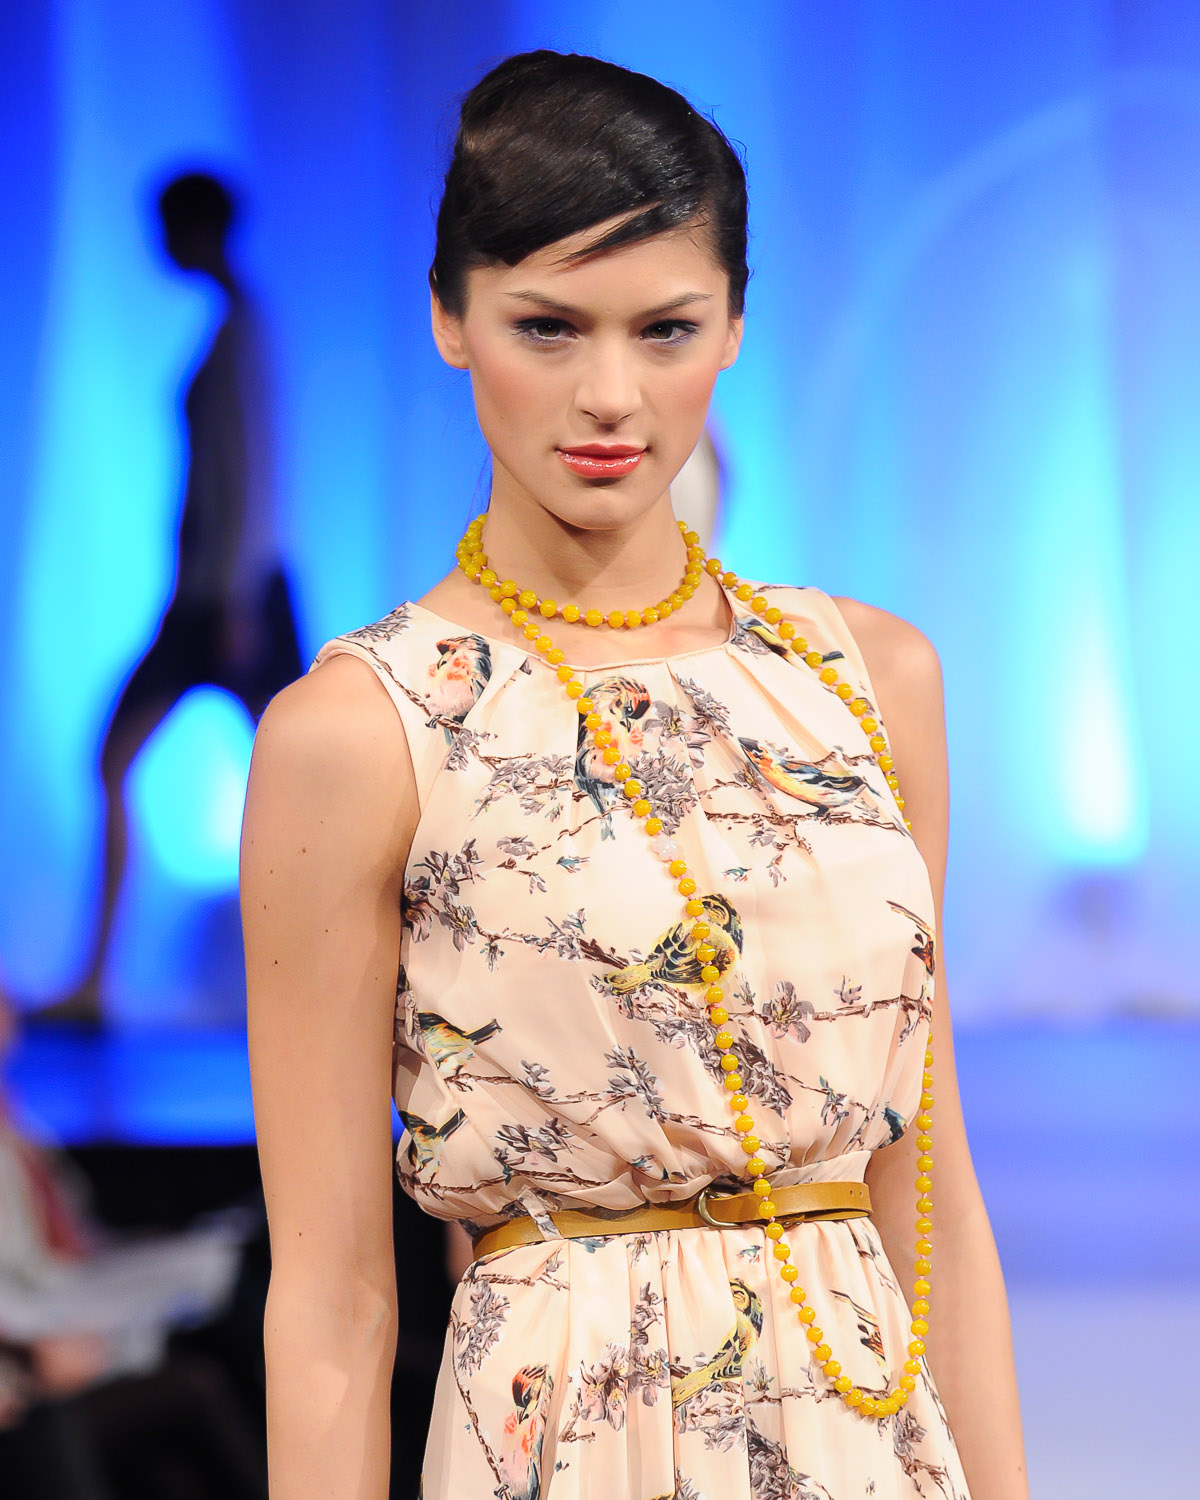 bath-in-fashion-spring-summer-8.jpg